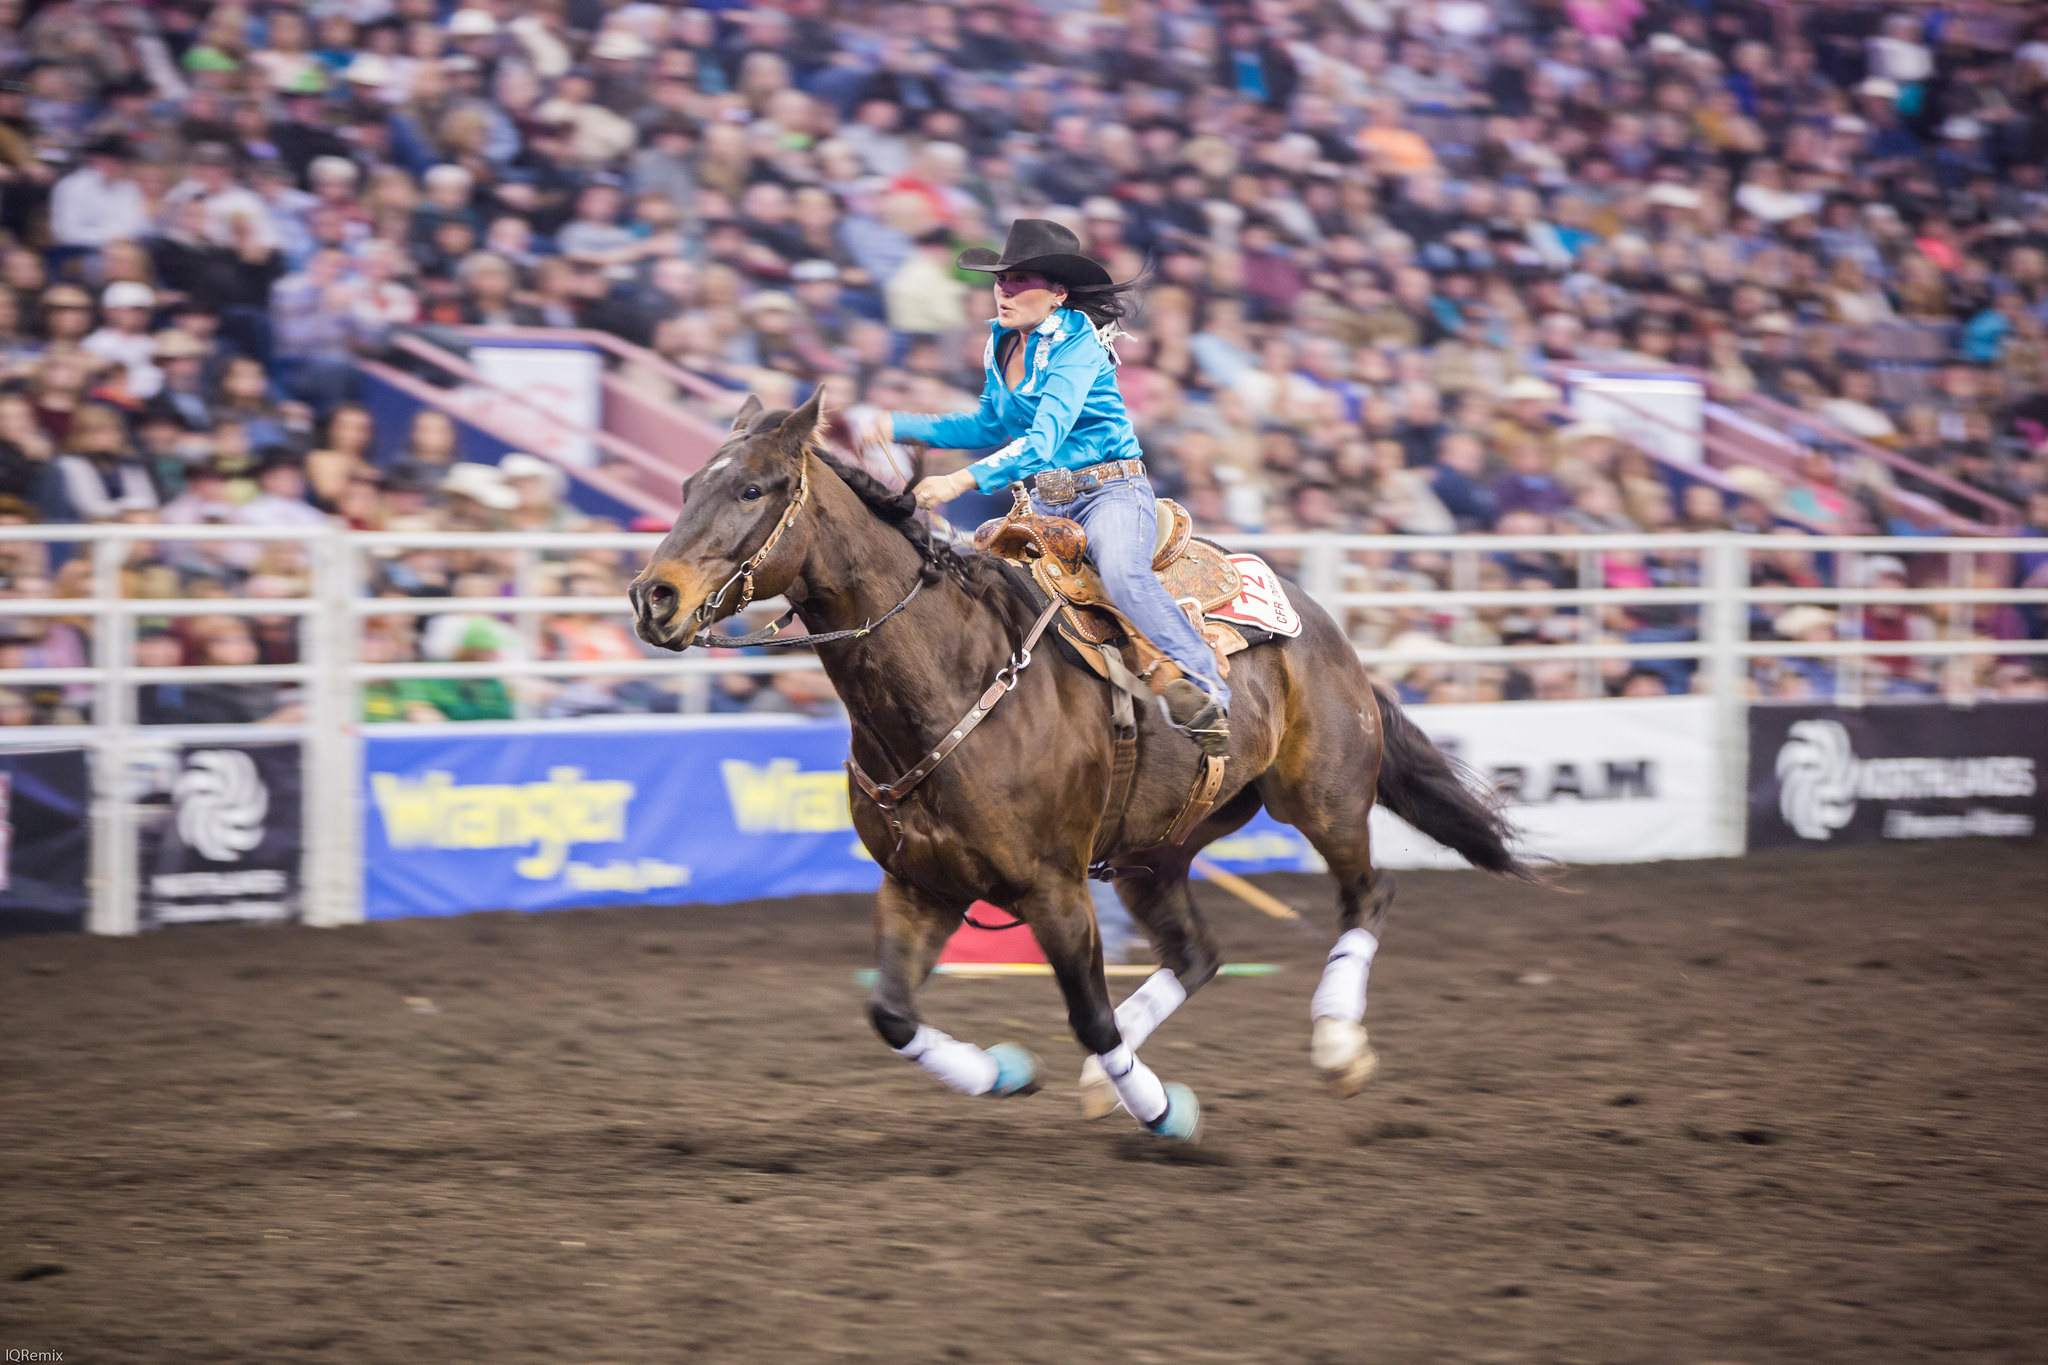 finals rodeo5 Canadian Finals Rodeo in Edmonton